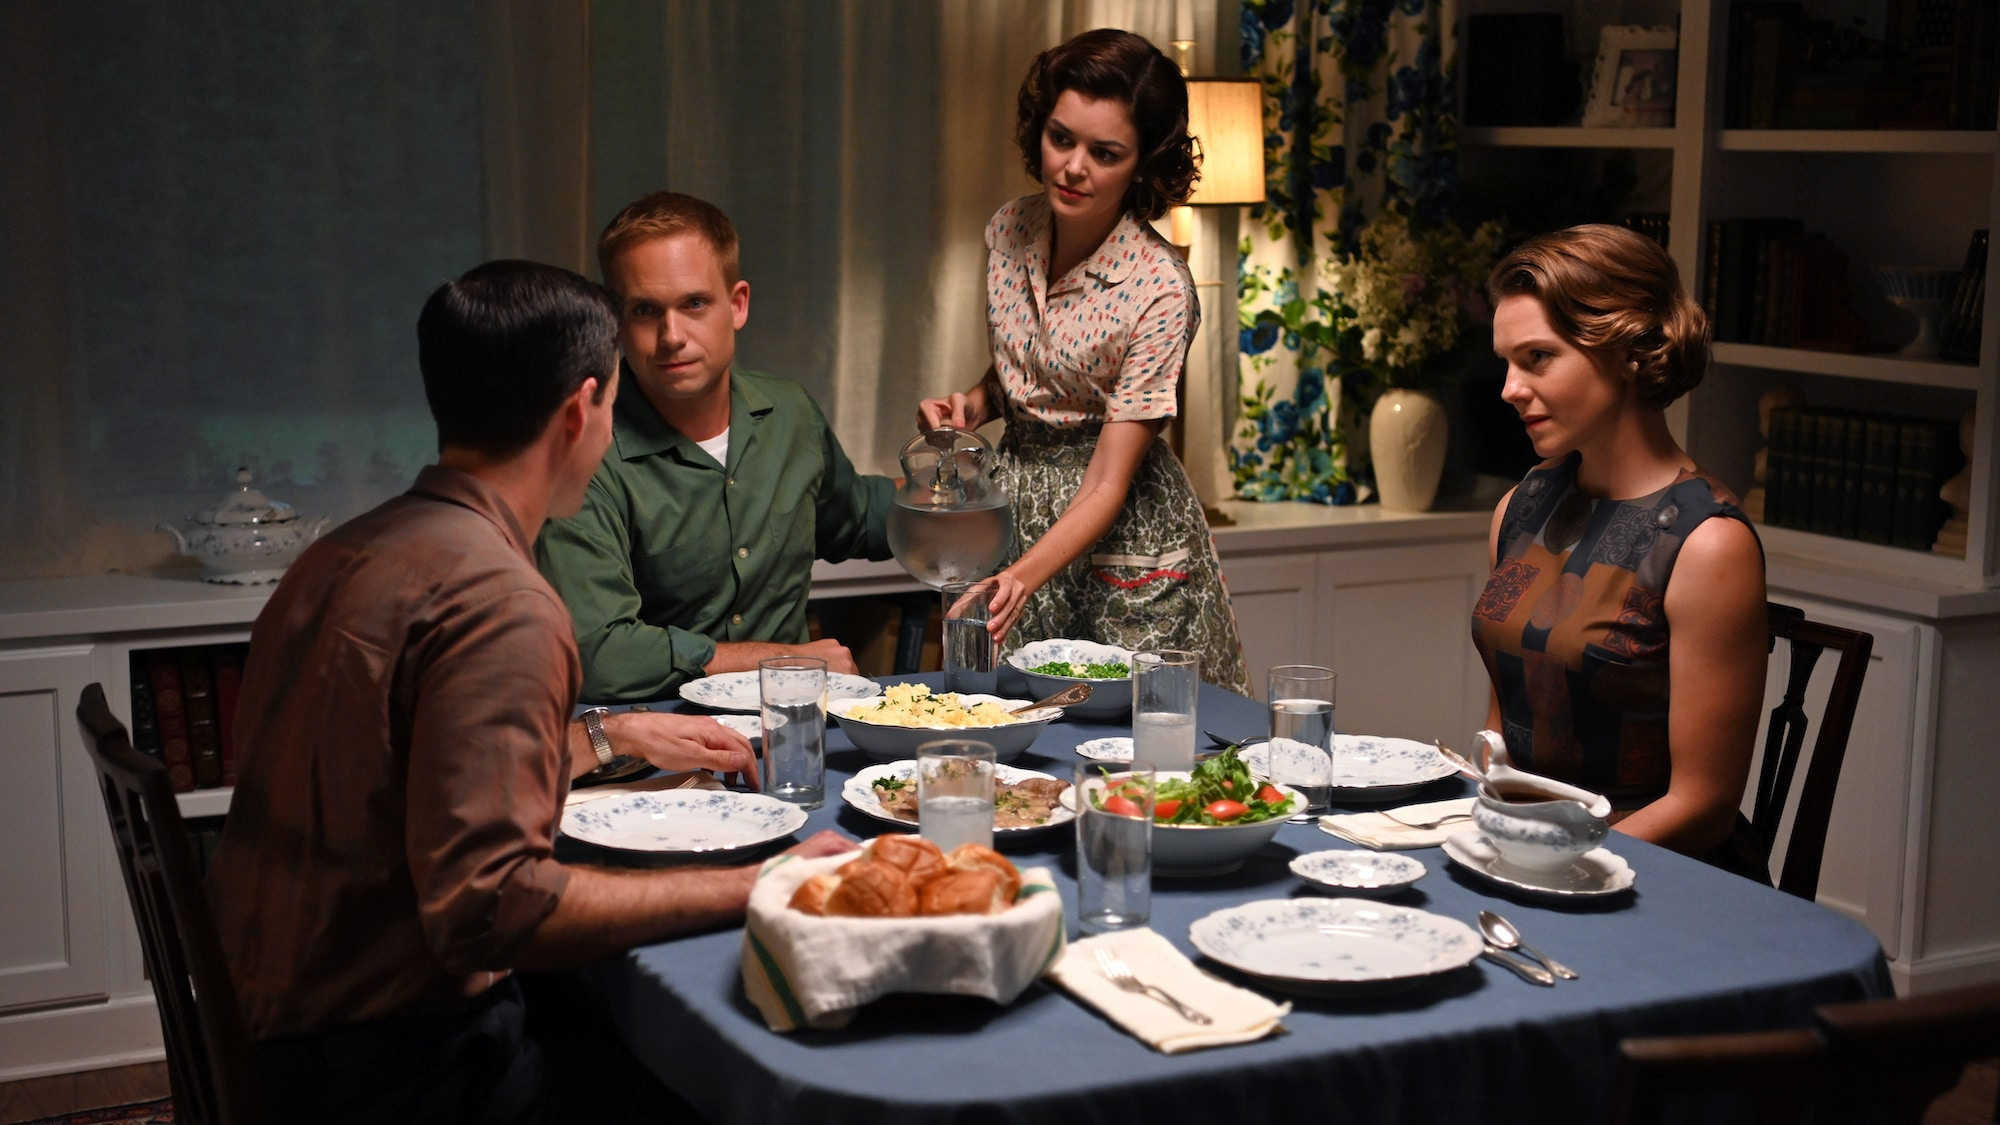 John Glenn played by Patrick J. Adams and Annie Glenn played by Nora Zehetner host Gordon Cooper played by Colin O'Donoghue and Trudy Cooper played by Eloise Mumford for dinner in National Geographic's THE RIGHT STUFF streaming on Disney+. (National Geogra